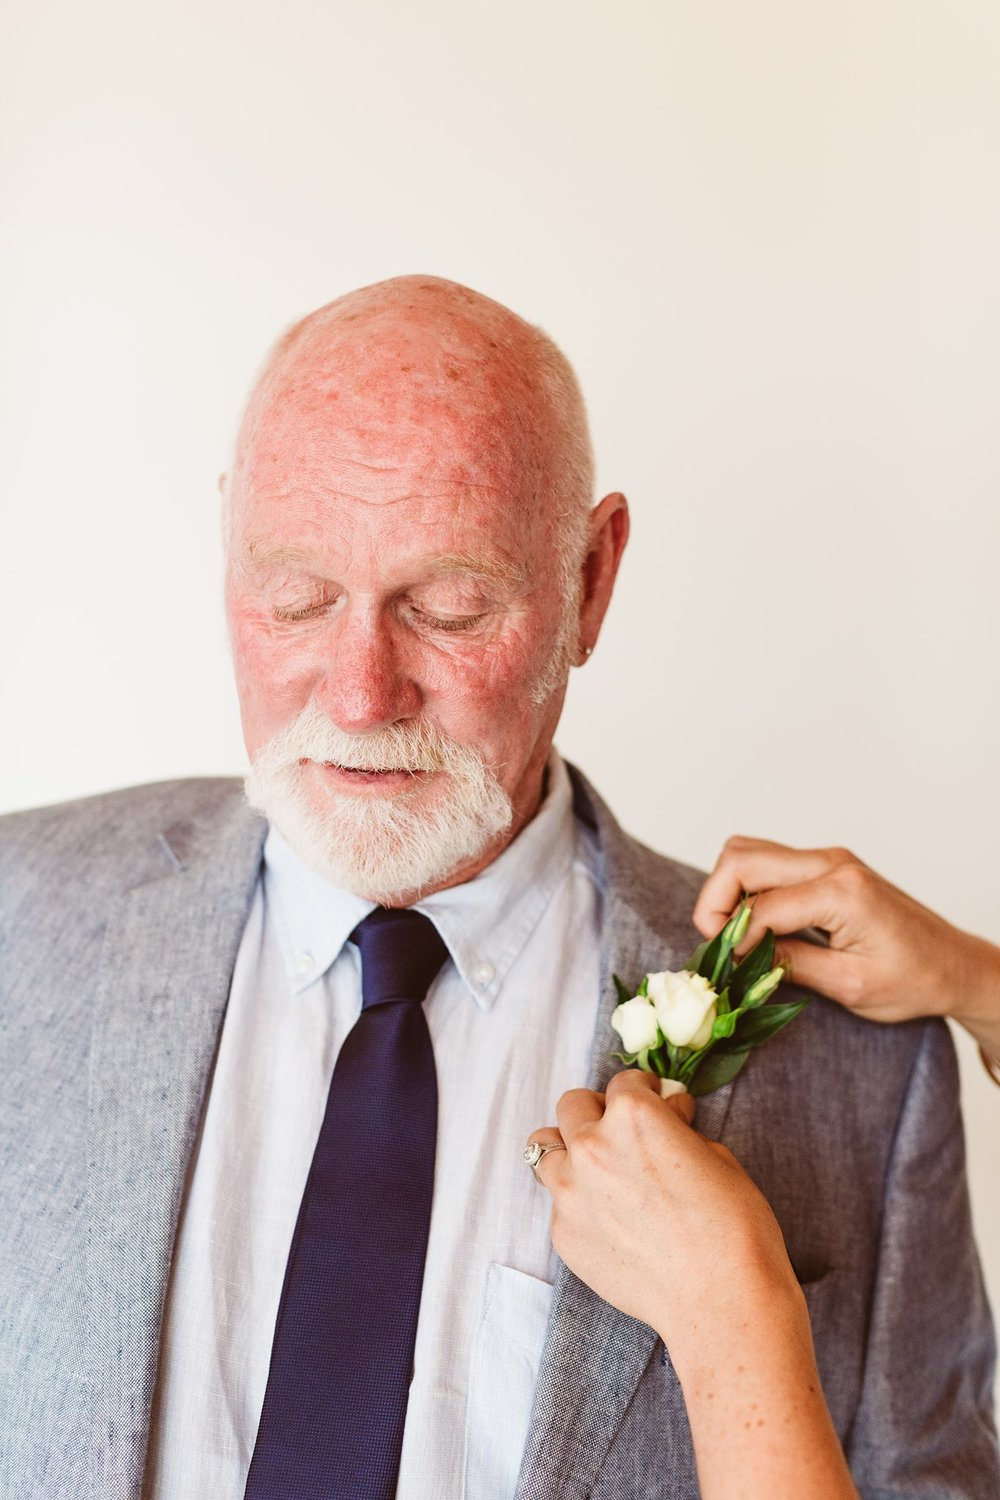 Swift and Click Wedding Photo Groom Buttonhole Boutonniere Wedding Day Flowers Florist Wellington Family Father of Bride